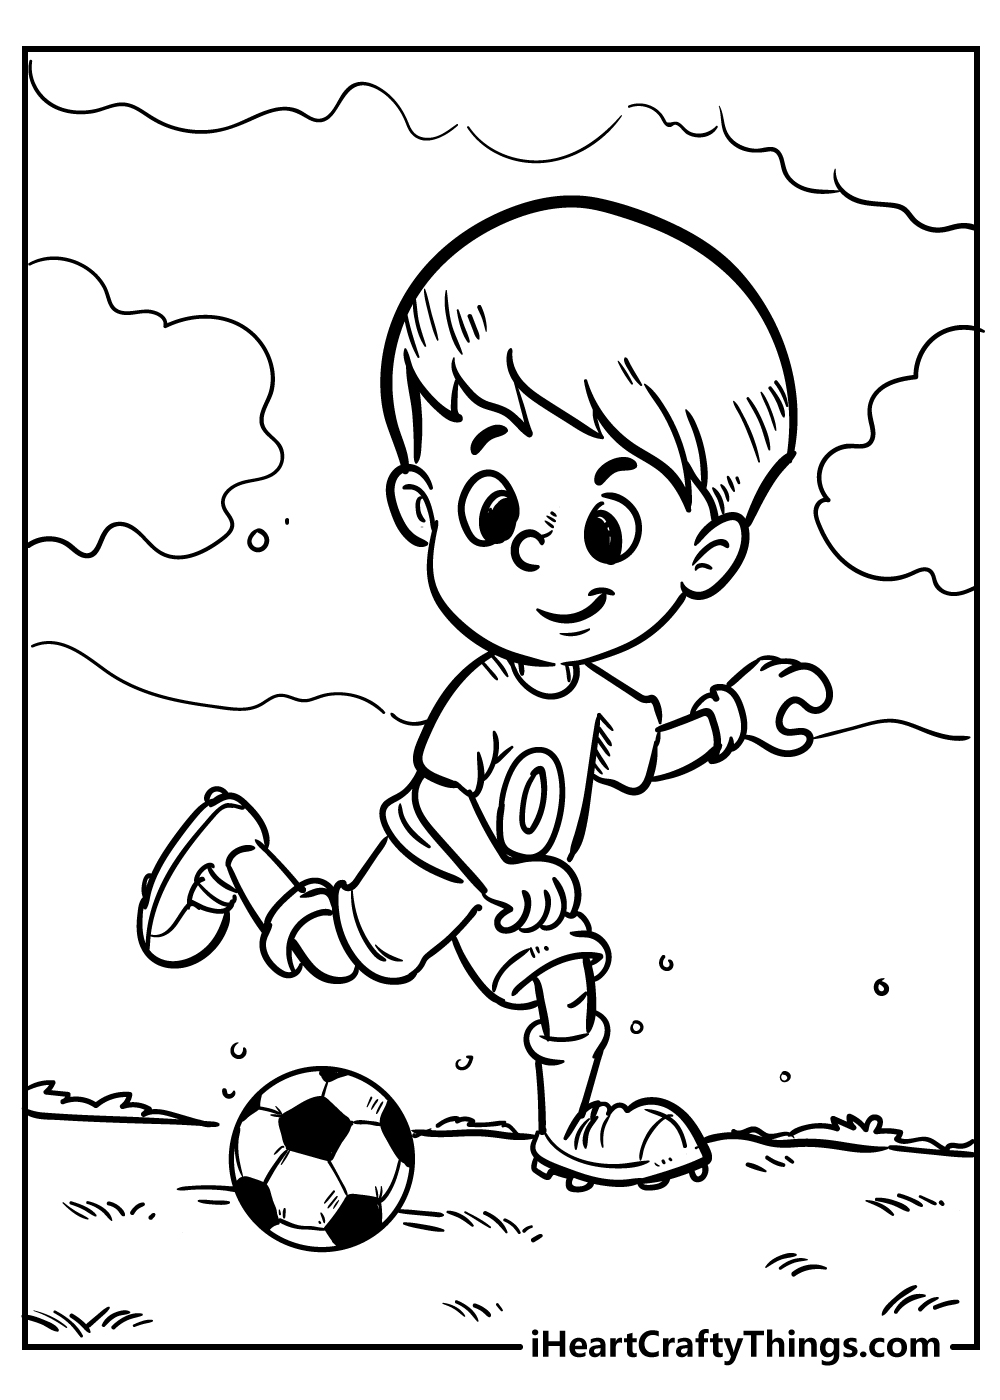 football coloring pages for boys free download